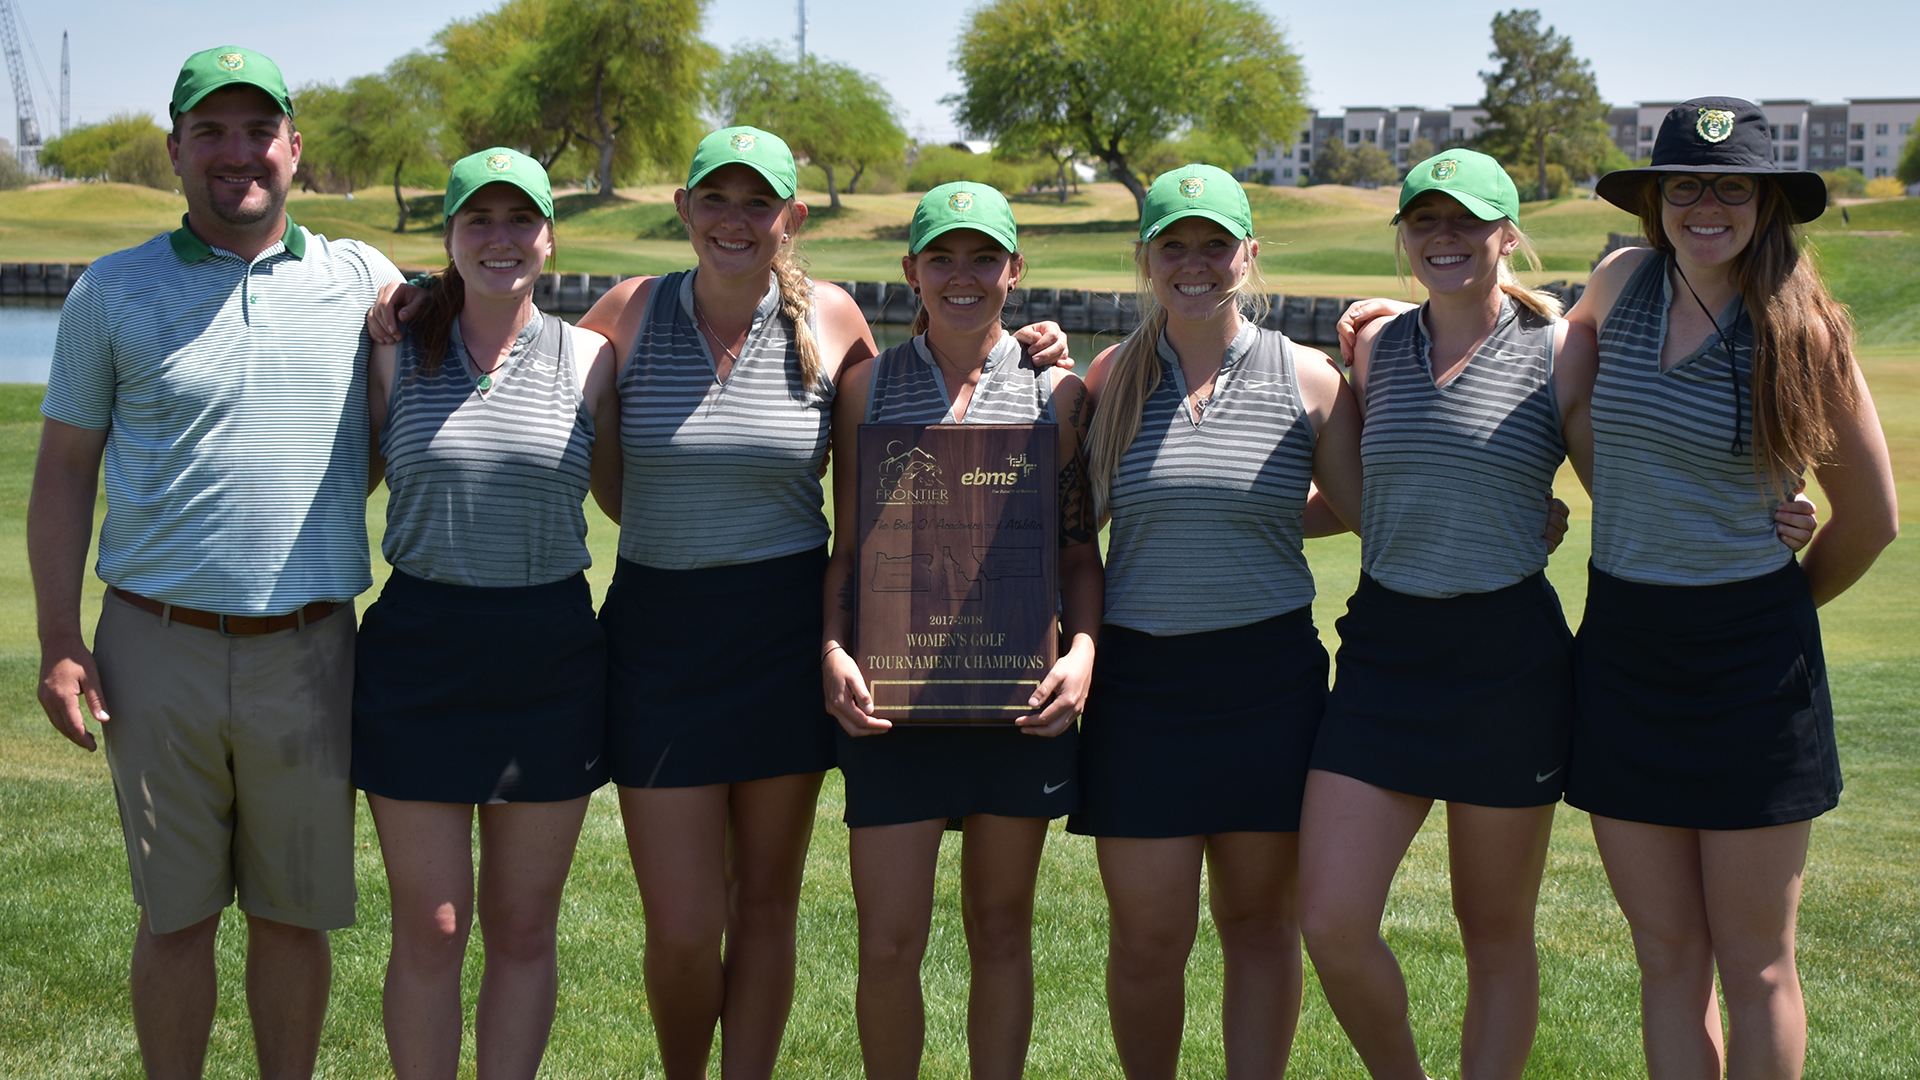 b5d0e141c31 Rocky Pulls Away to Win Frontier Conference Championship - Rocky ...